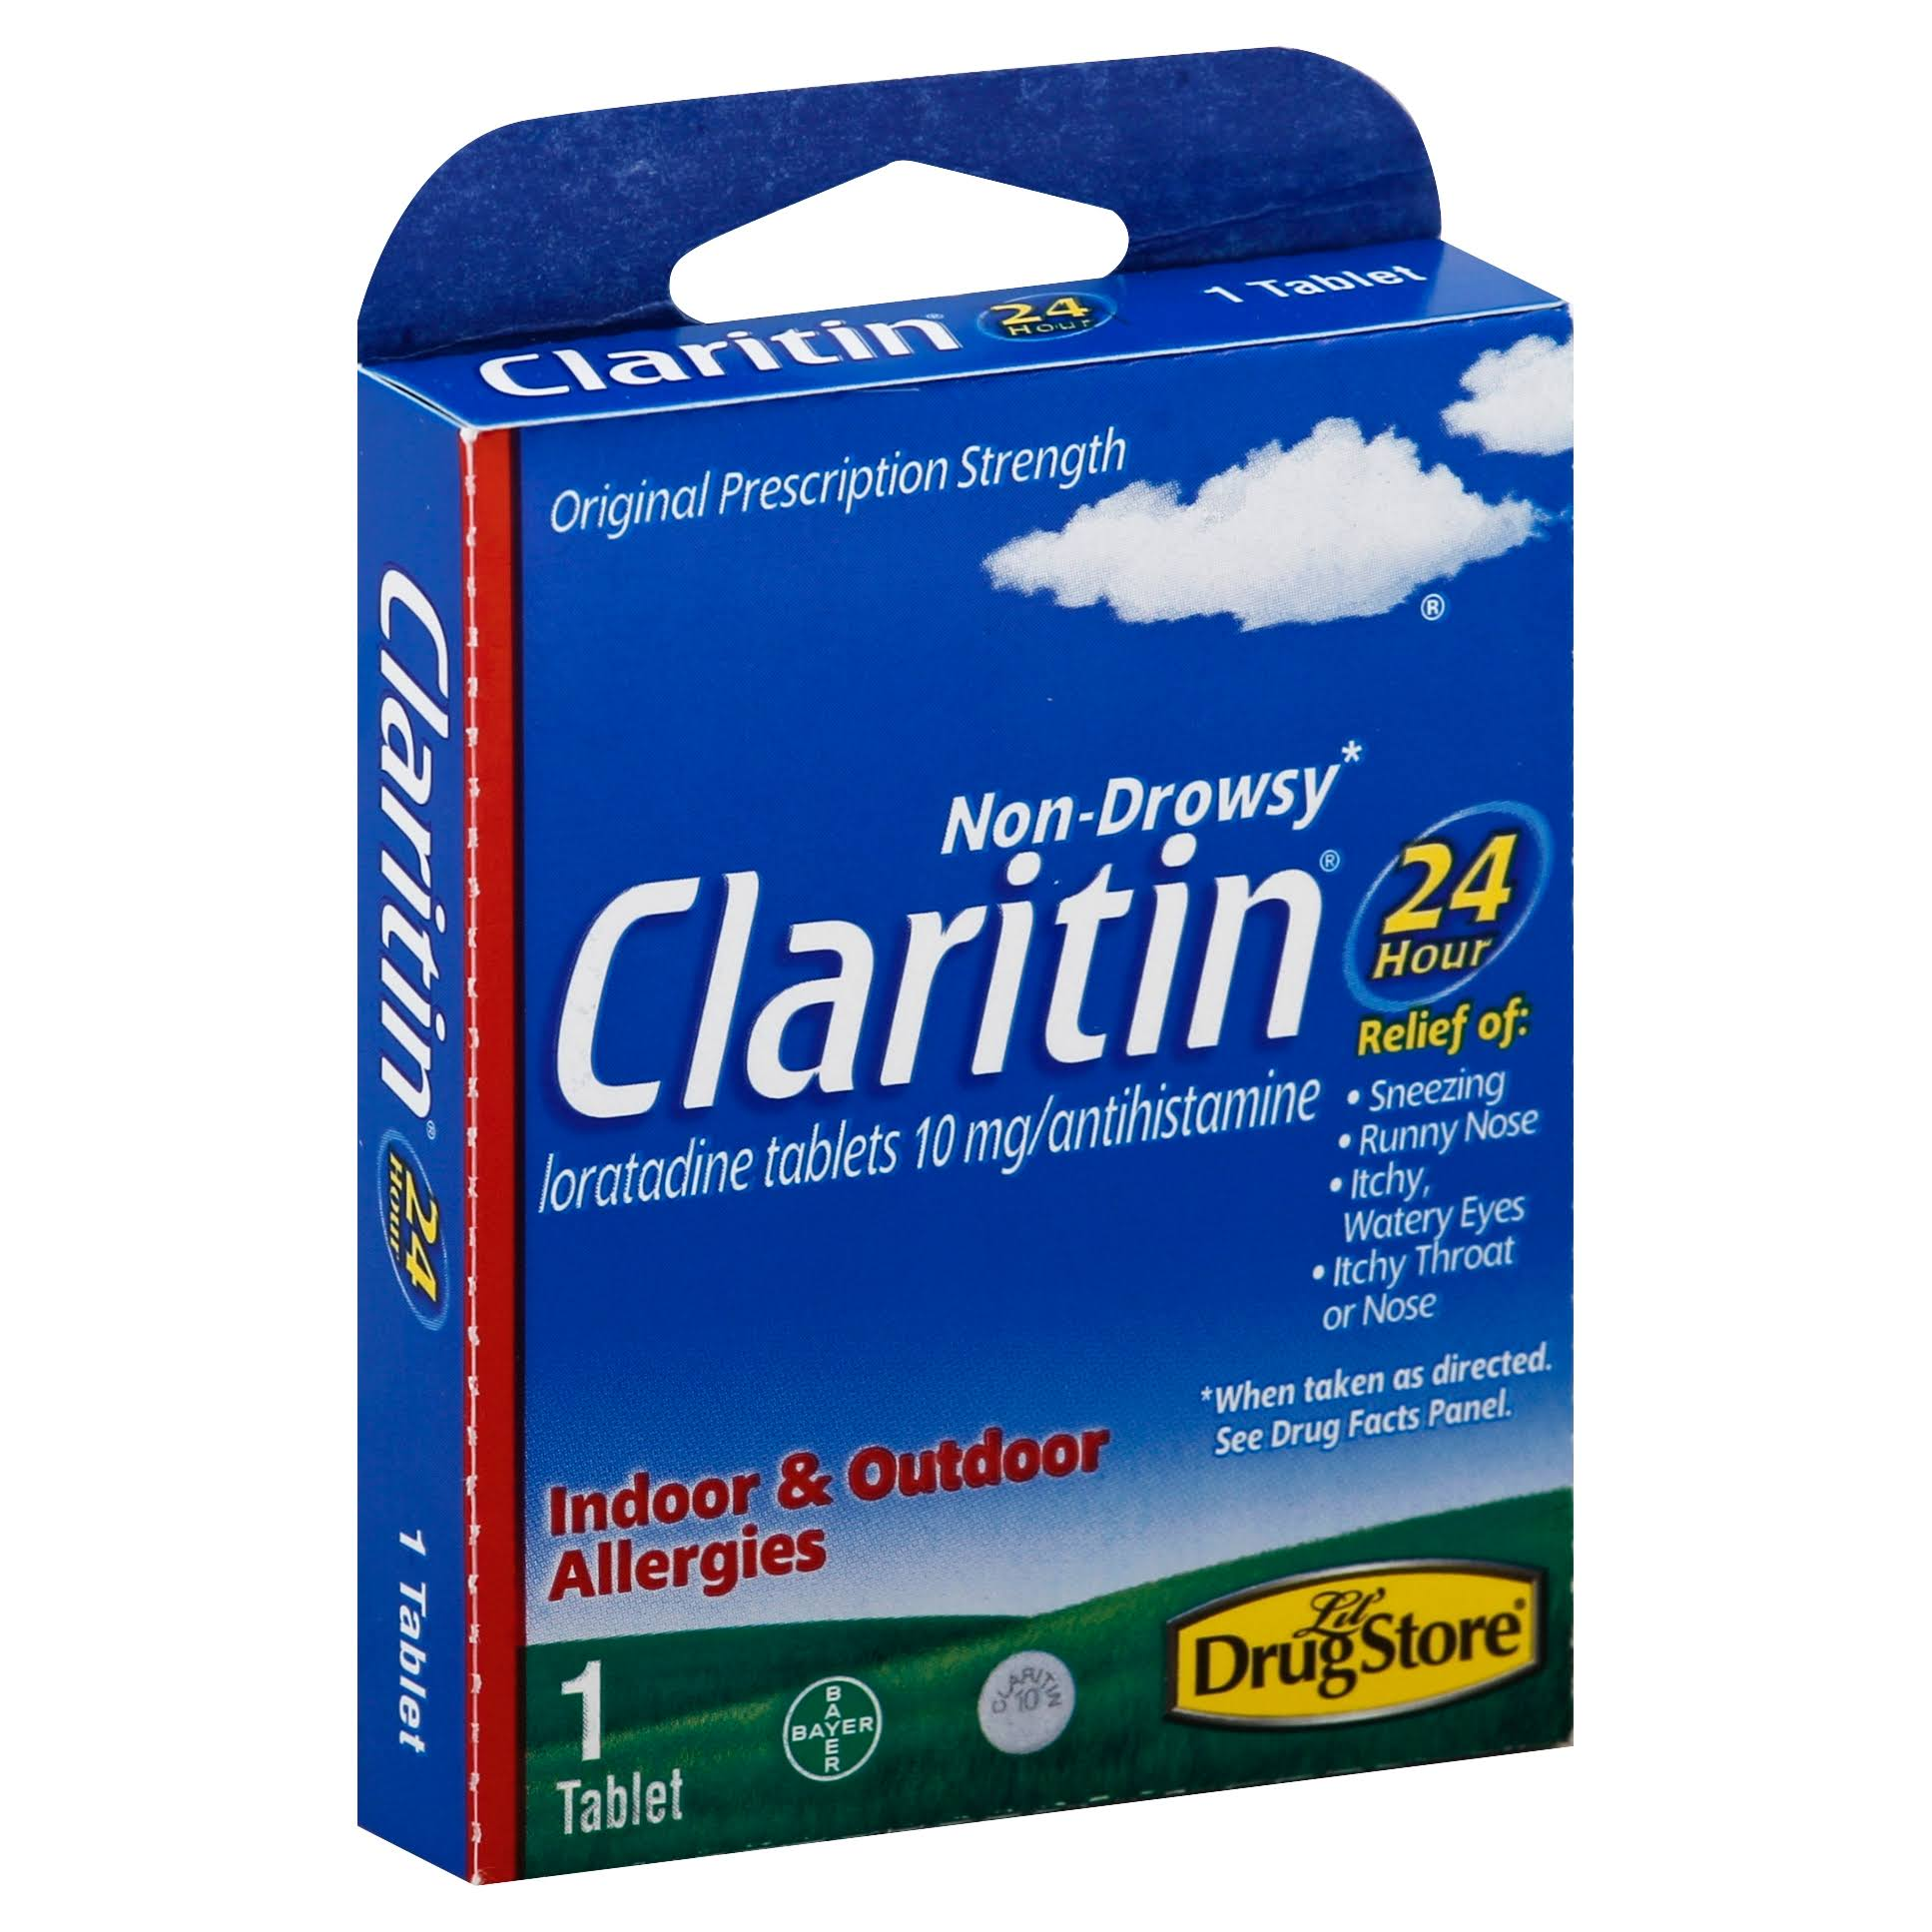 Lil Drugstore Products Claritin Non-Drowsy Antihistamine - 1 Tablet